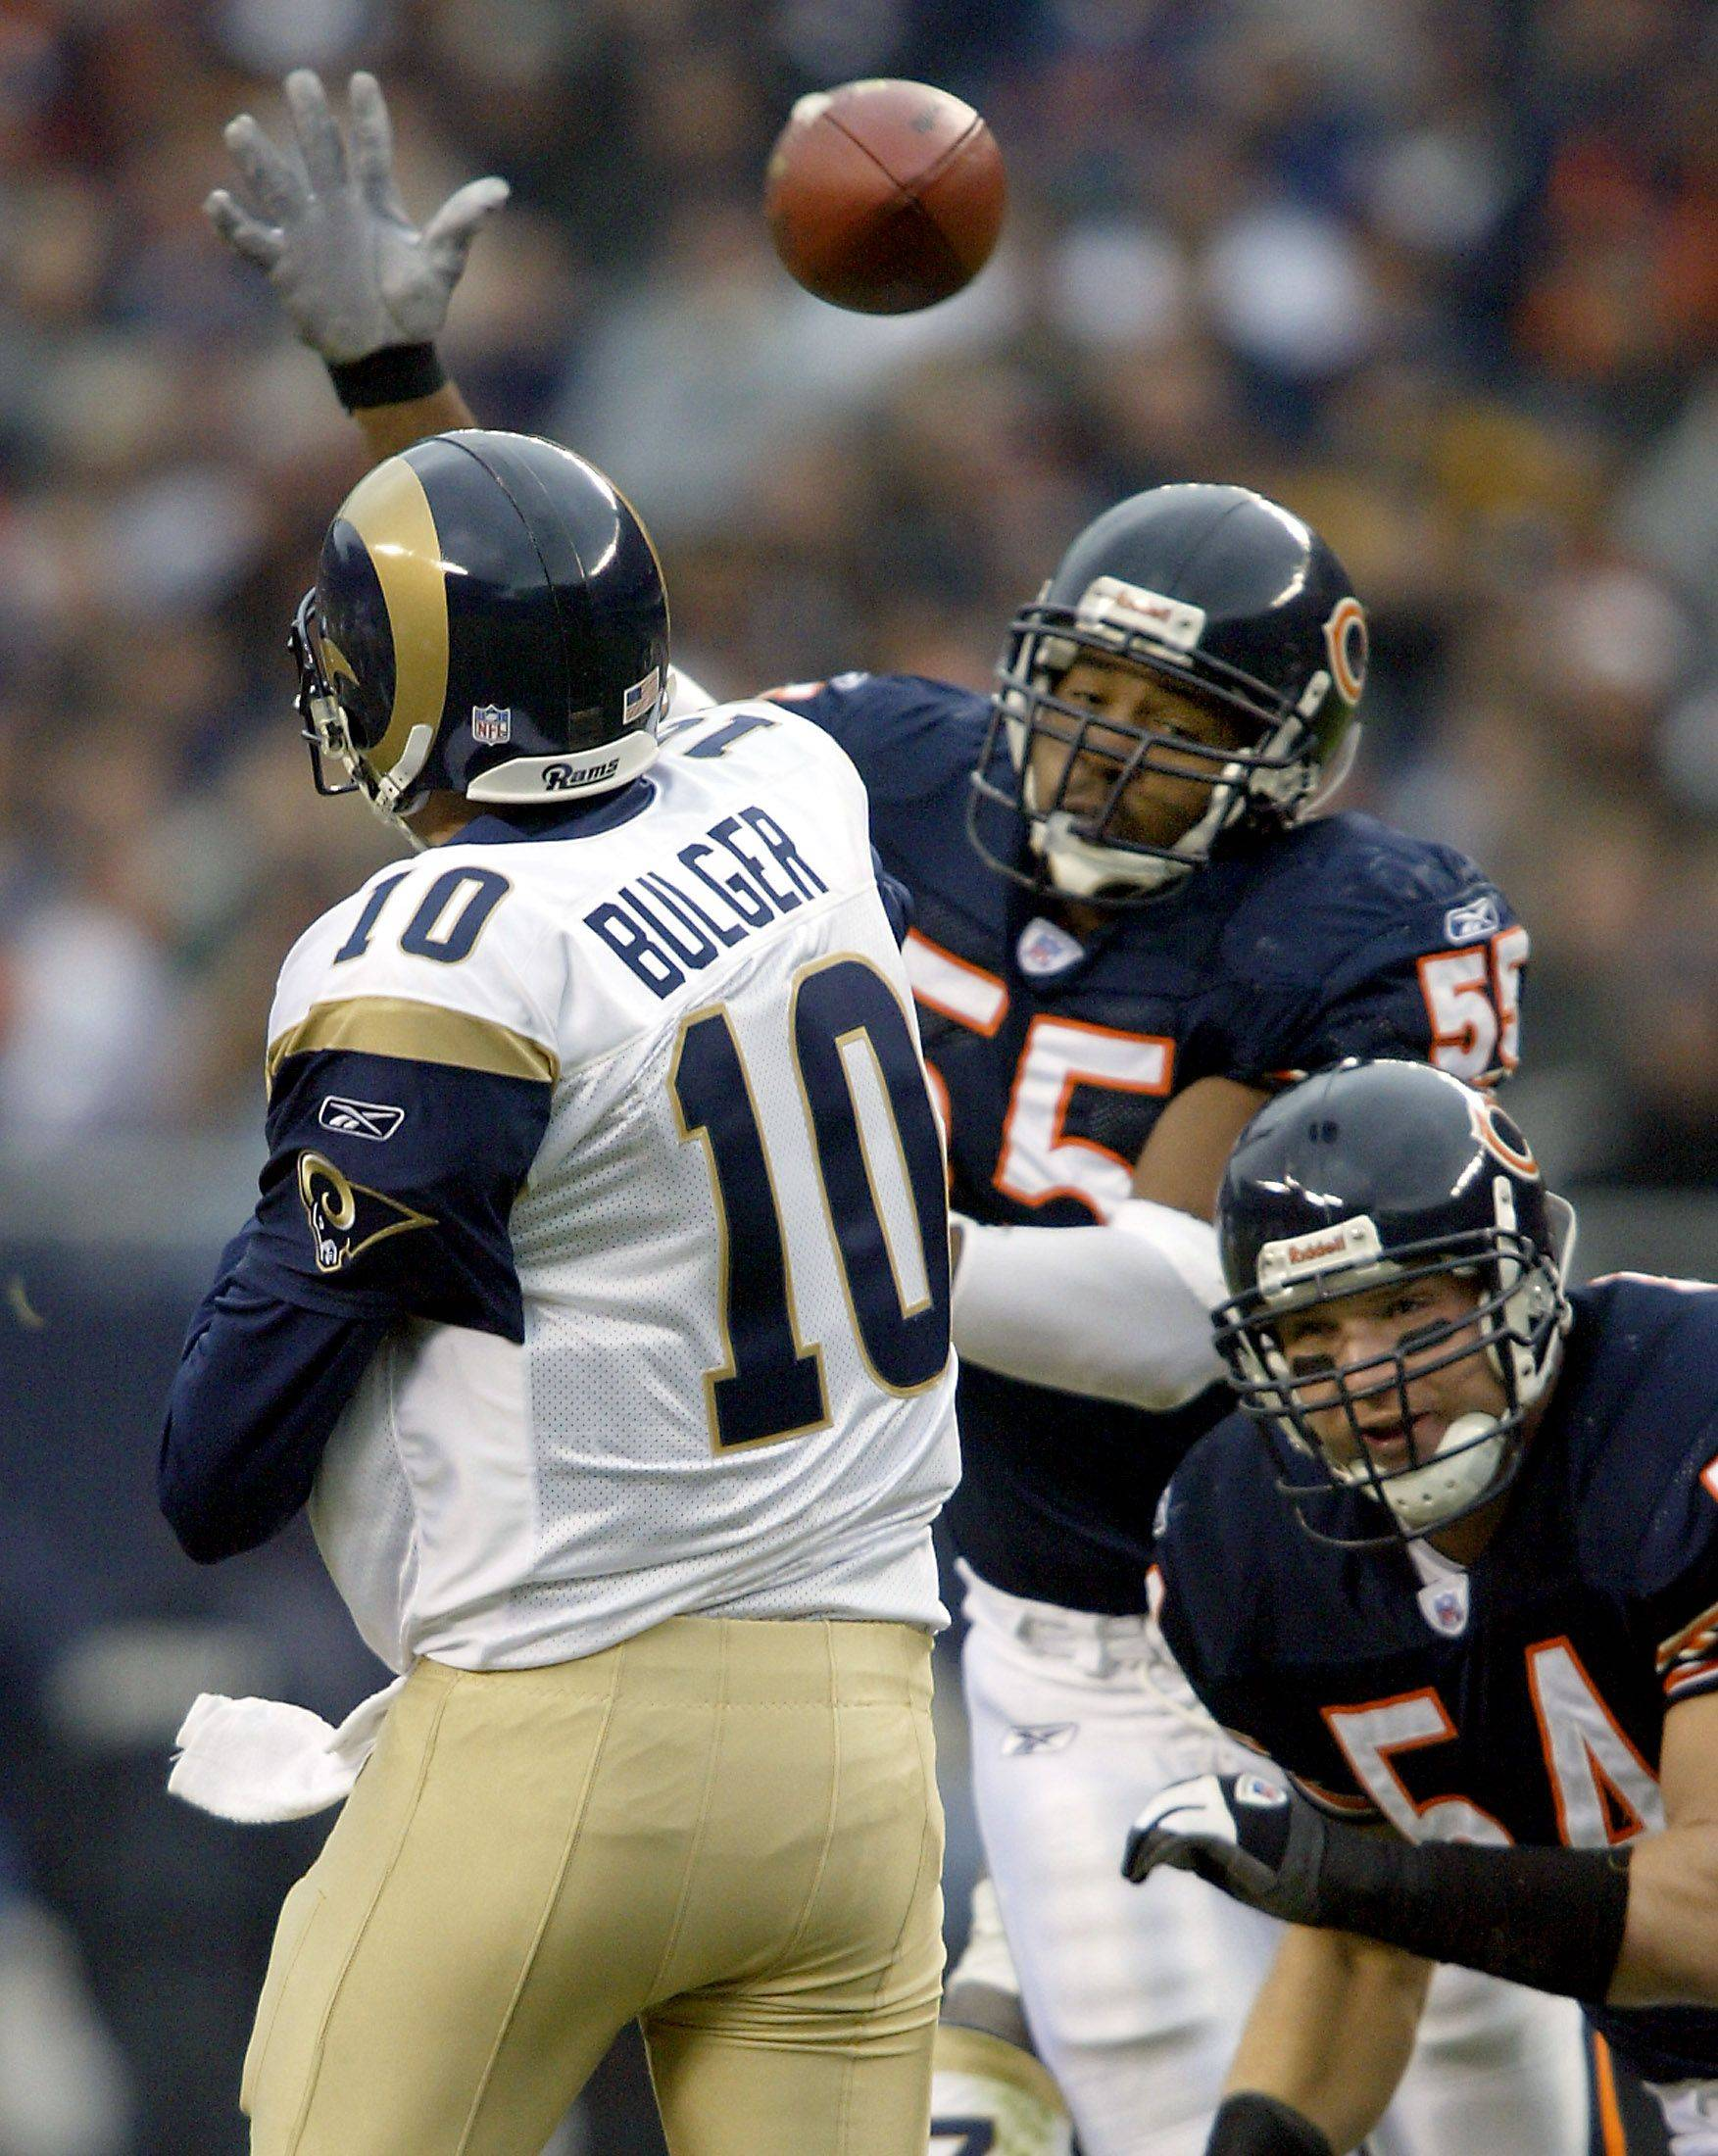 Bears Lance Briggs and Brian Urlacher put pressure on the Rams Marc Bulger as he releases the ball during the bears loss to the St Louis rams 23-21 Sunday at Soldier Field.